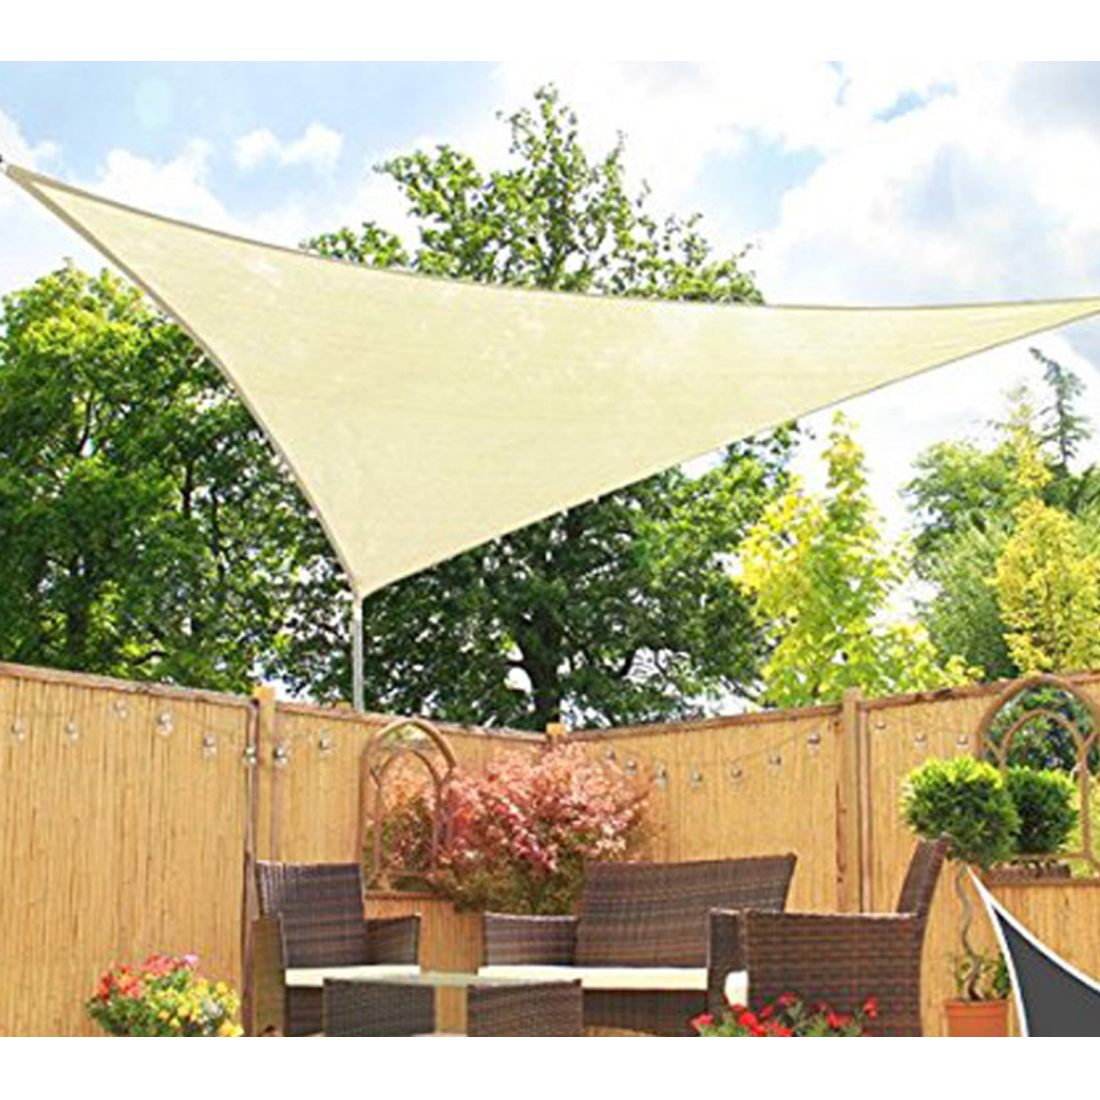 Us 30 47 3 6m Beige Outdoor Waterproof Sunshade Sail Canopy Patio Awning Garden Uv Camping Shelter Decor 2019 Summer New Arrival In Awnings From